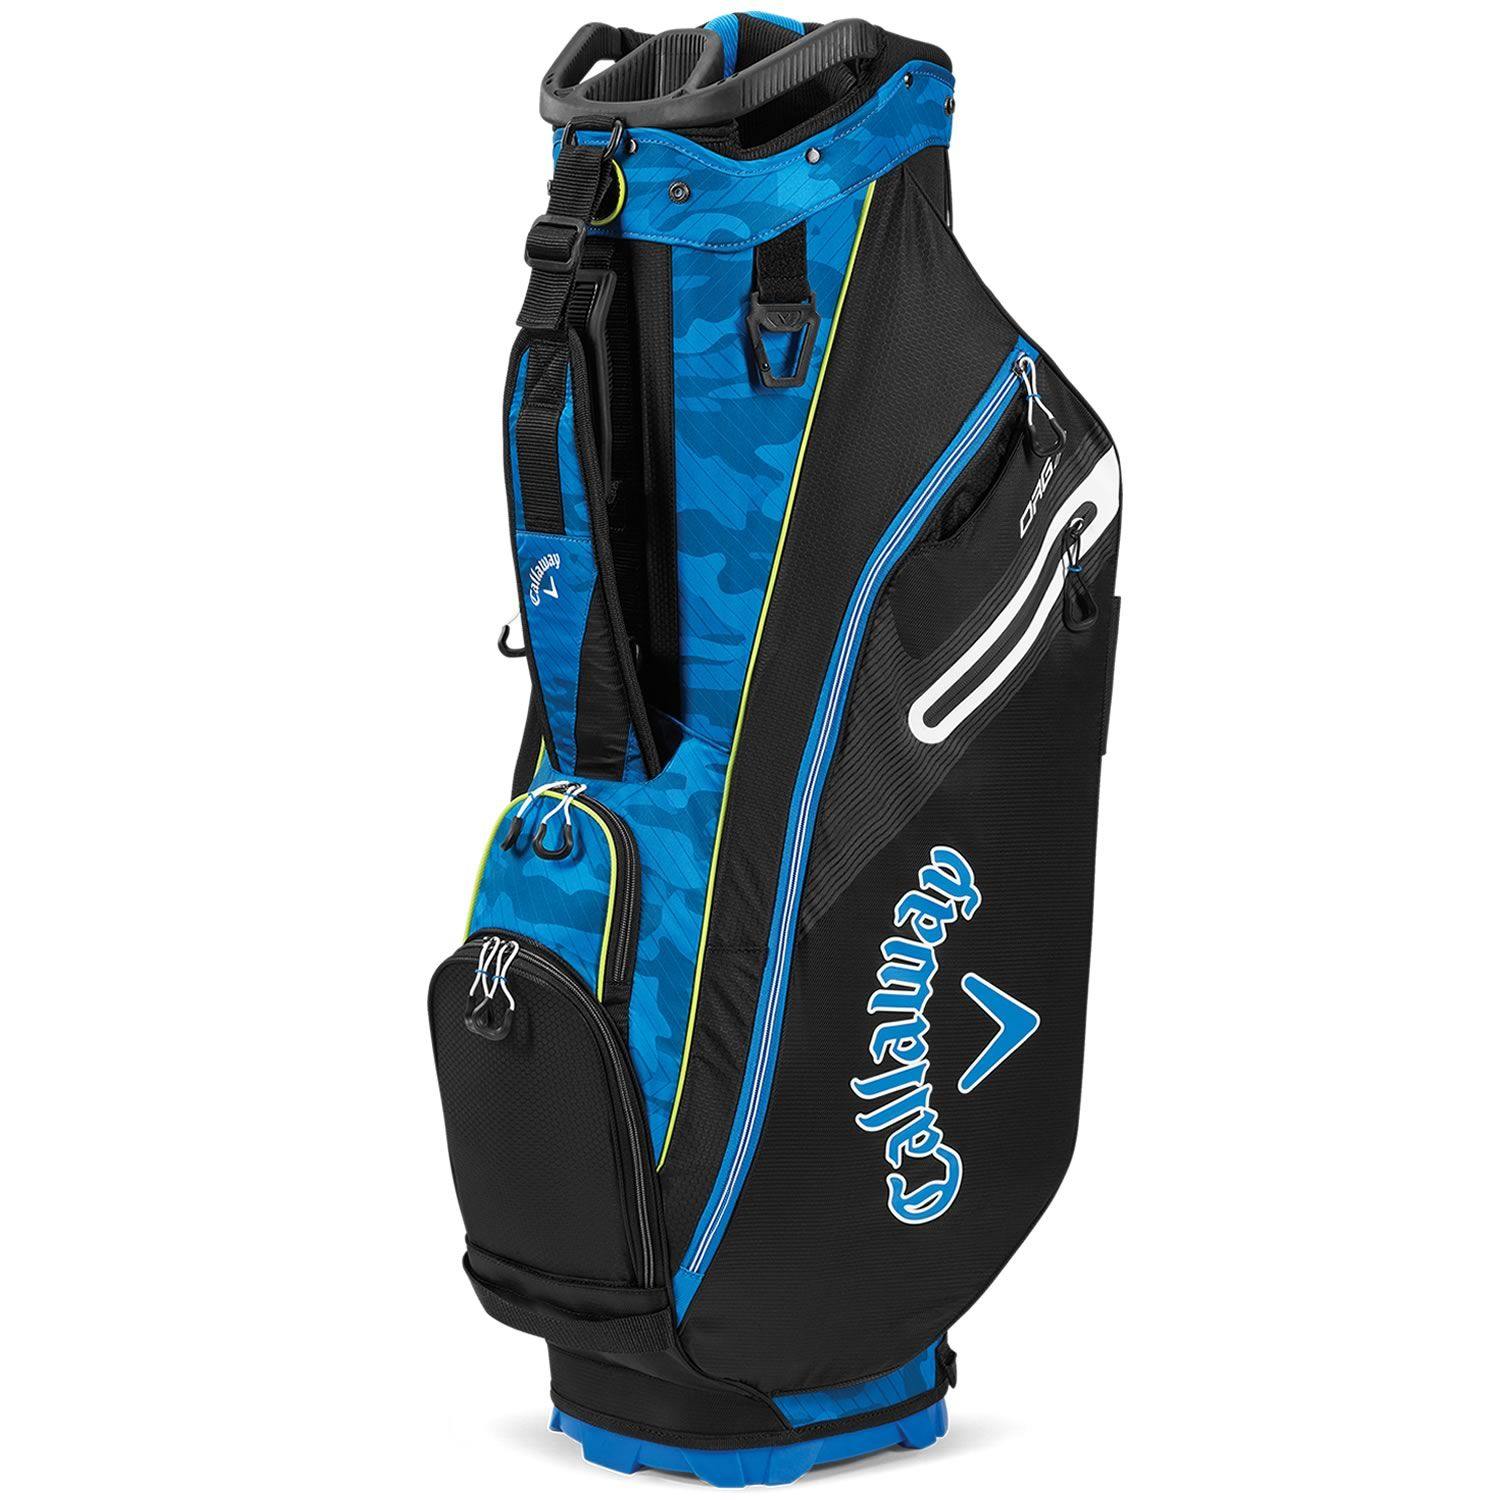 Callaway 2020 Chev Org 7 Golf Cart Bag